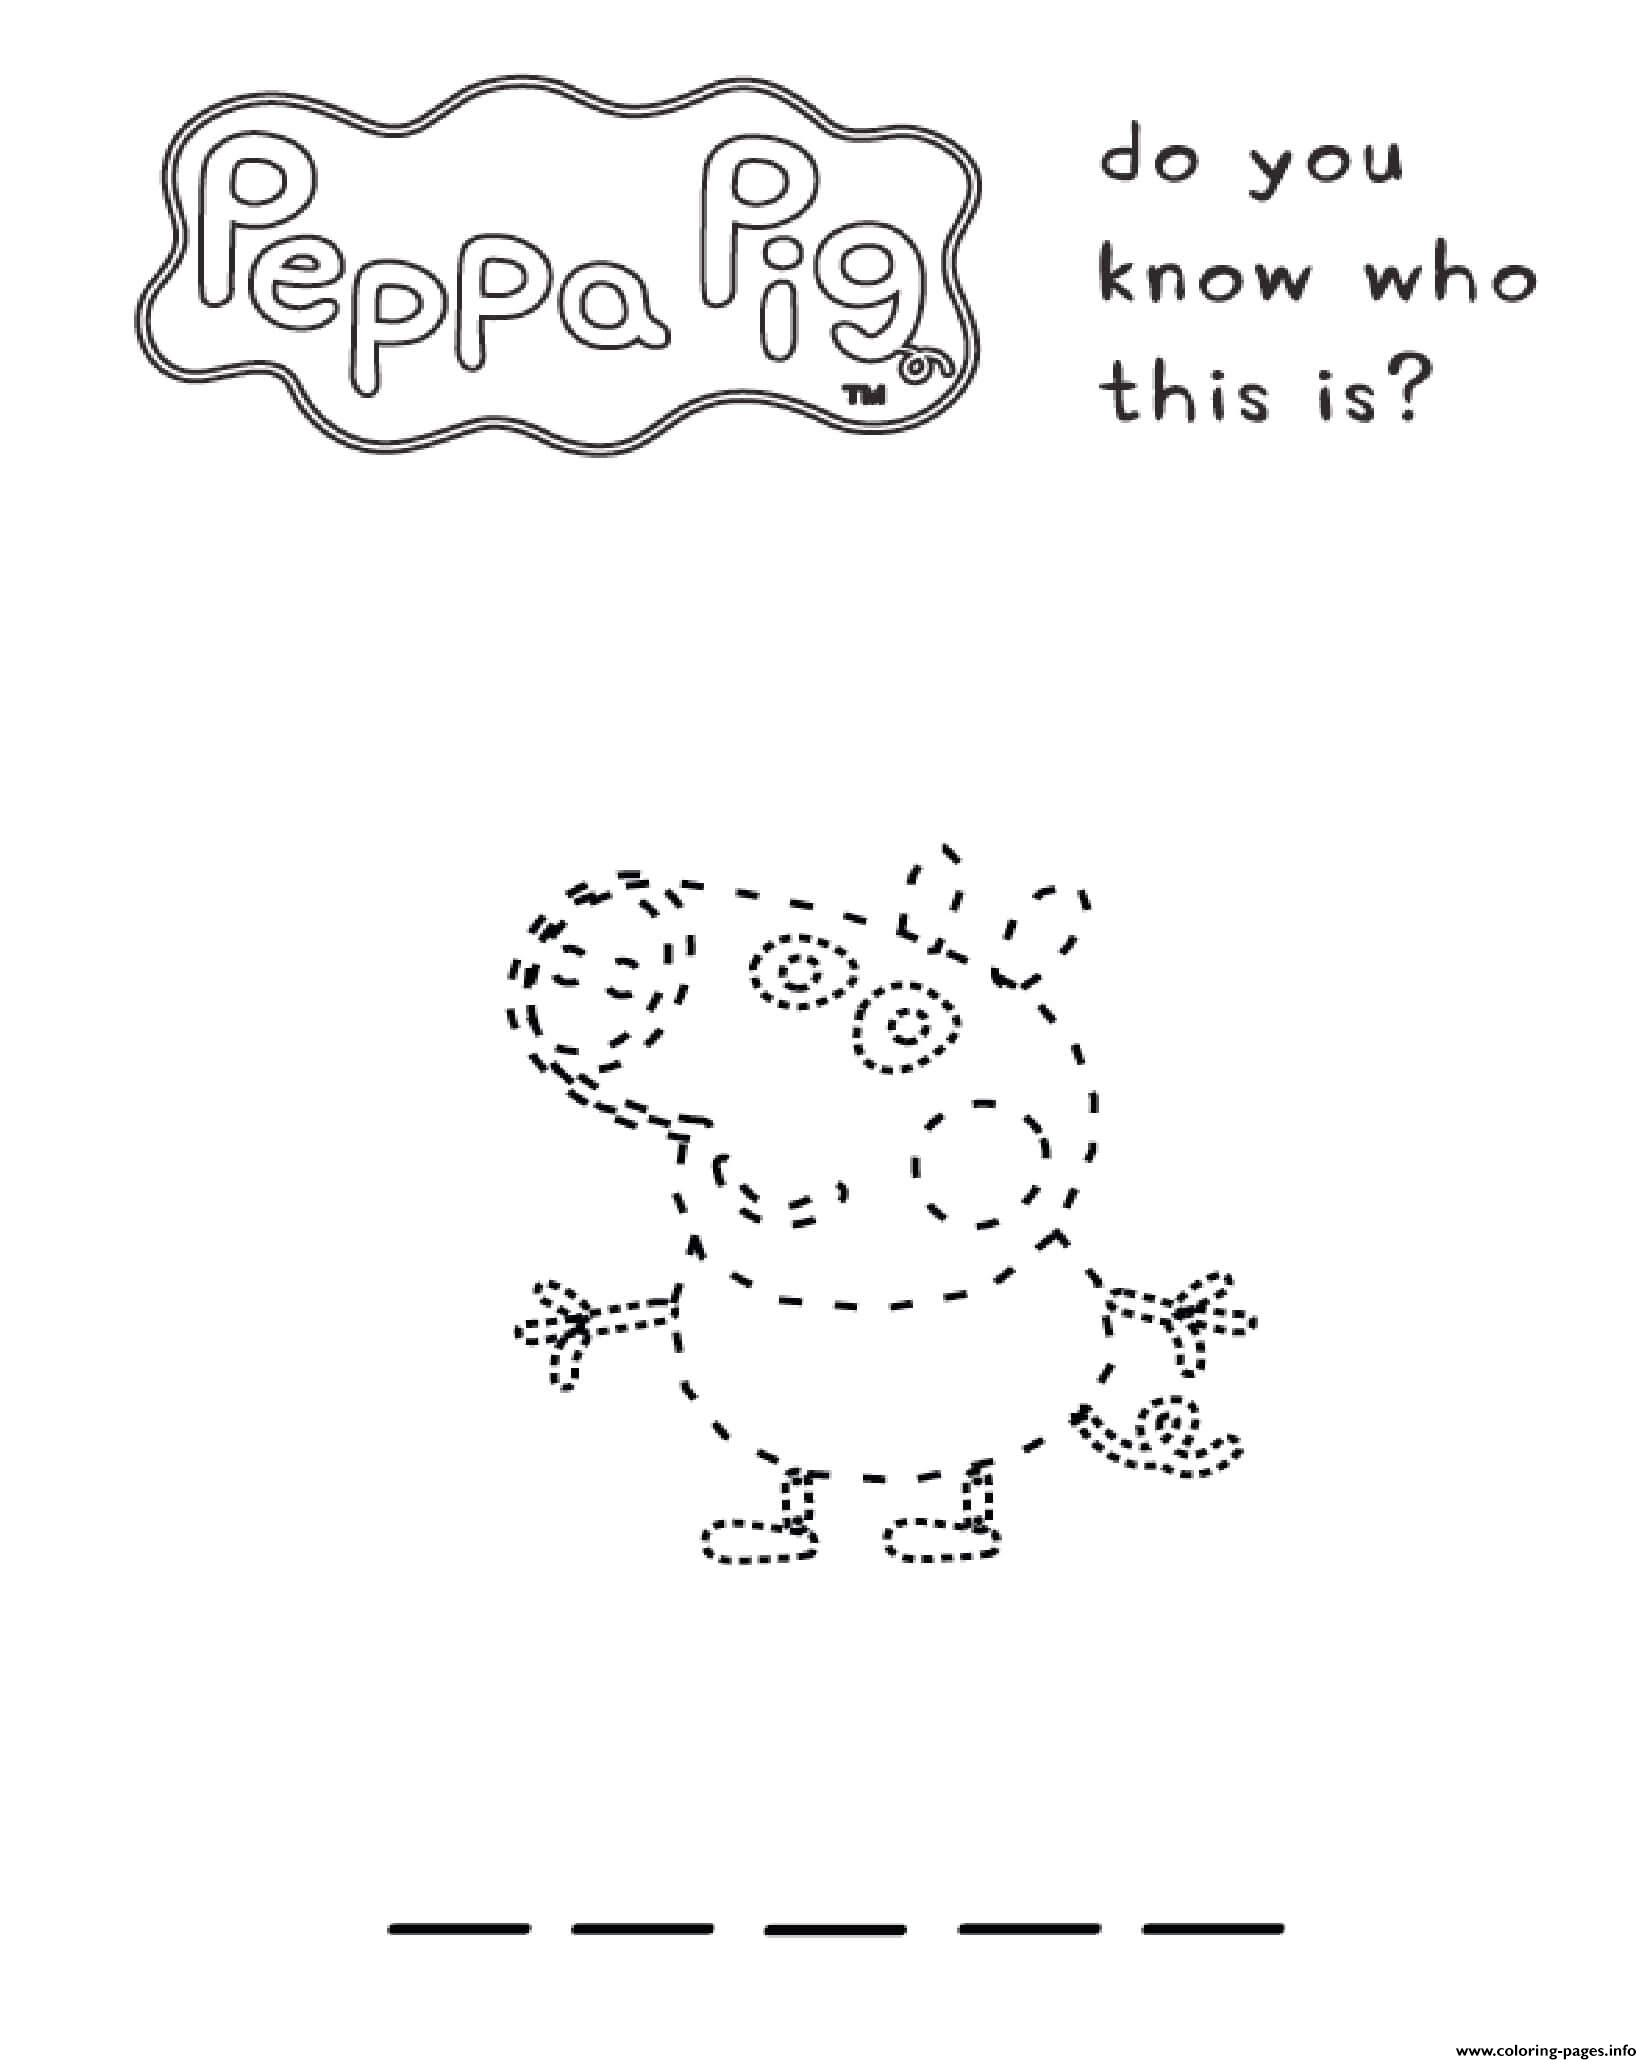 Peppa Pig Do You Know This Is coloring pages